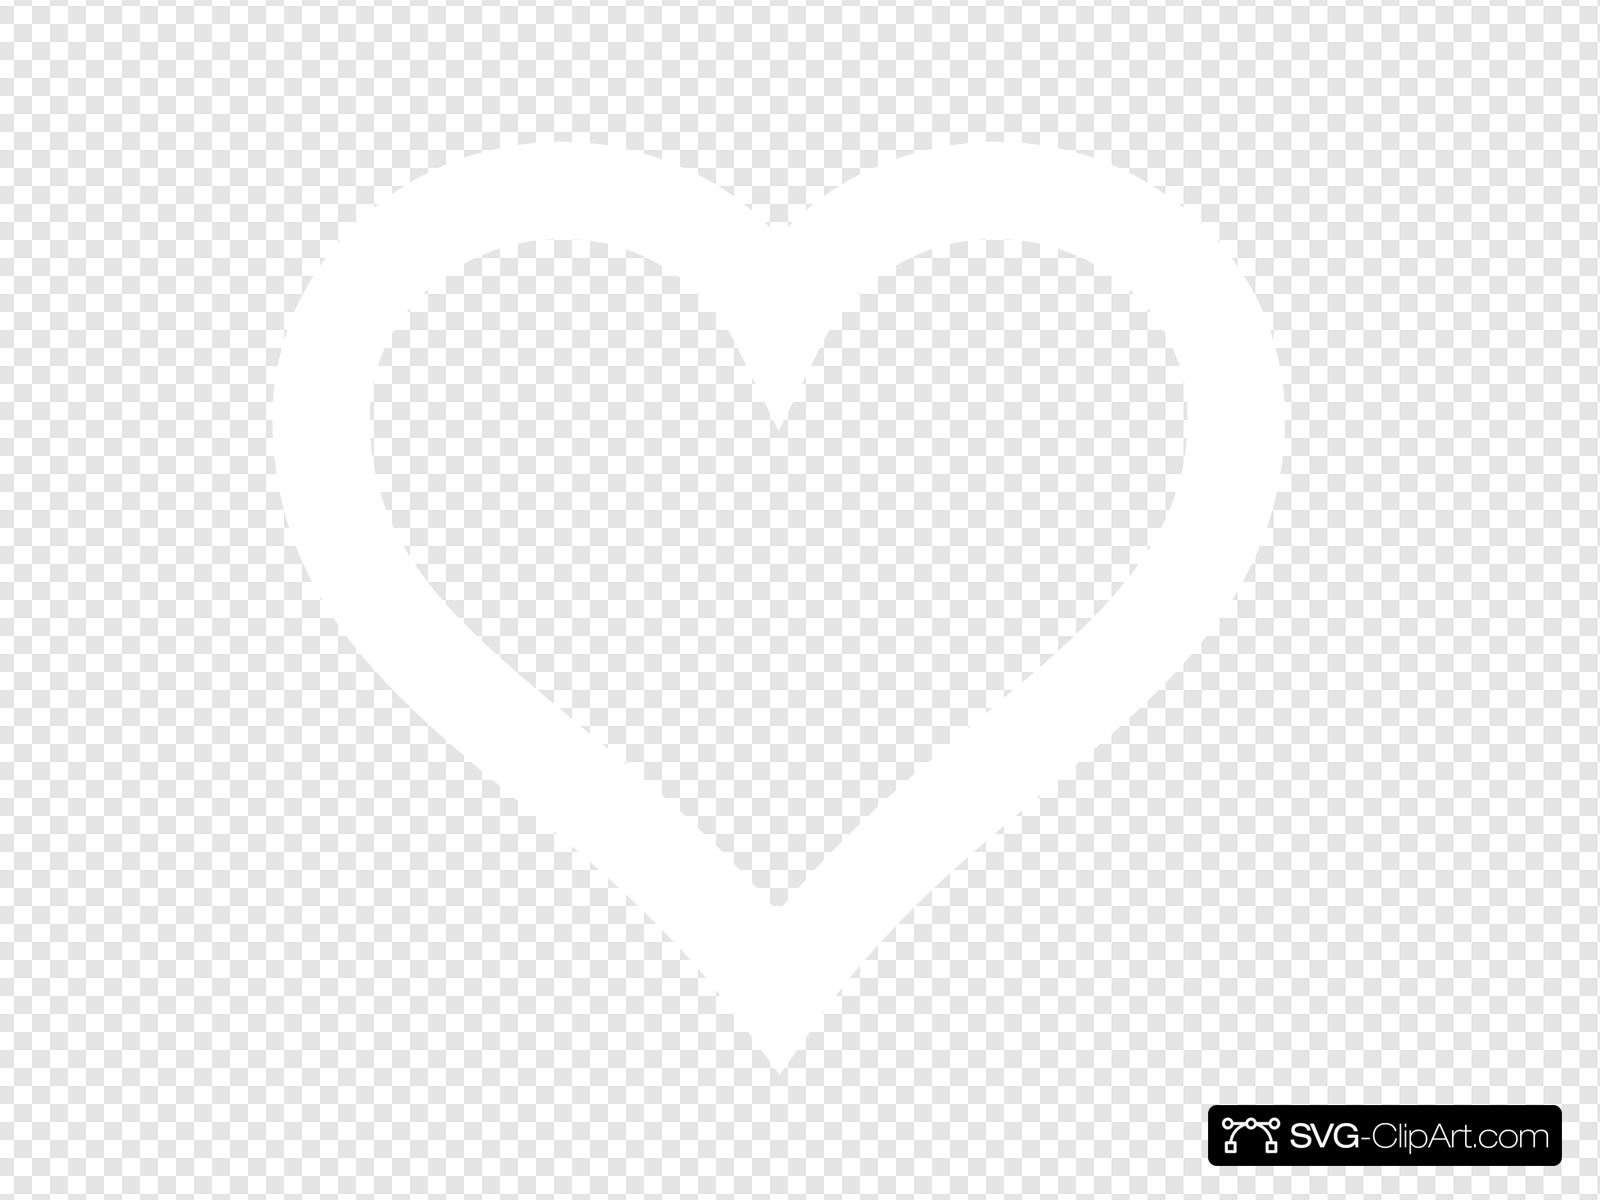 White Heart Outline Newer Clip art, Icon and SVG.